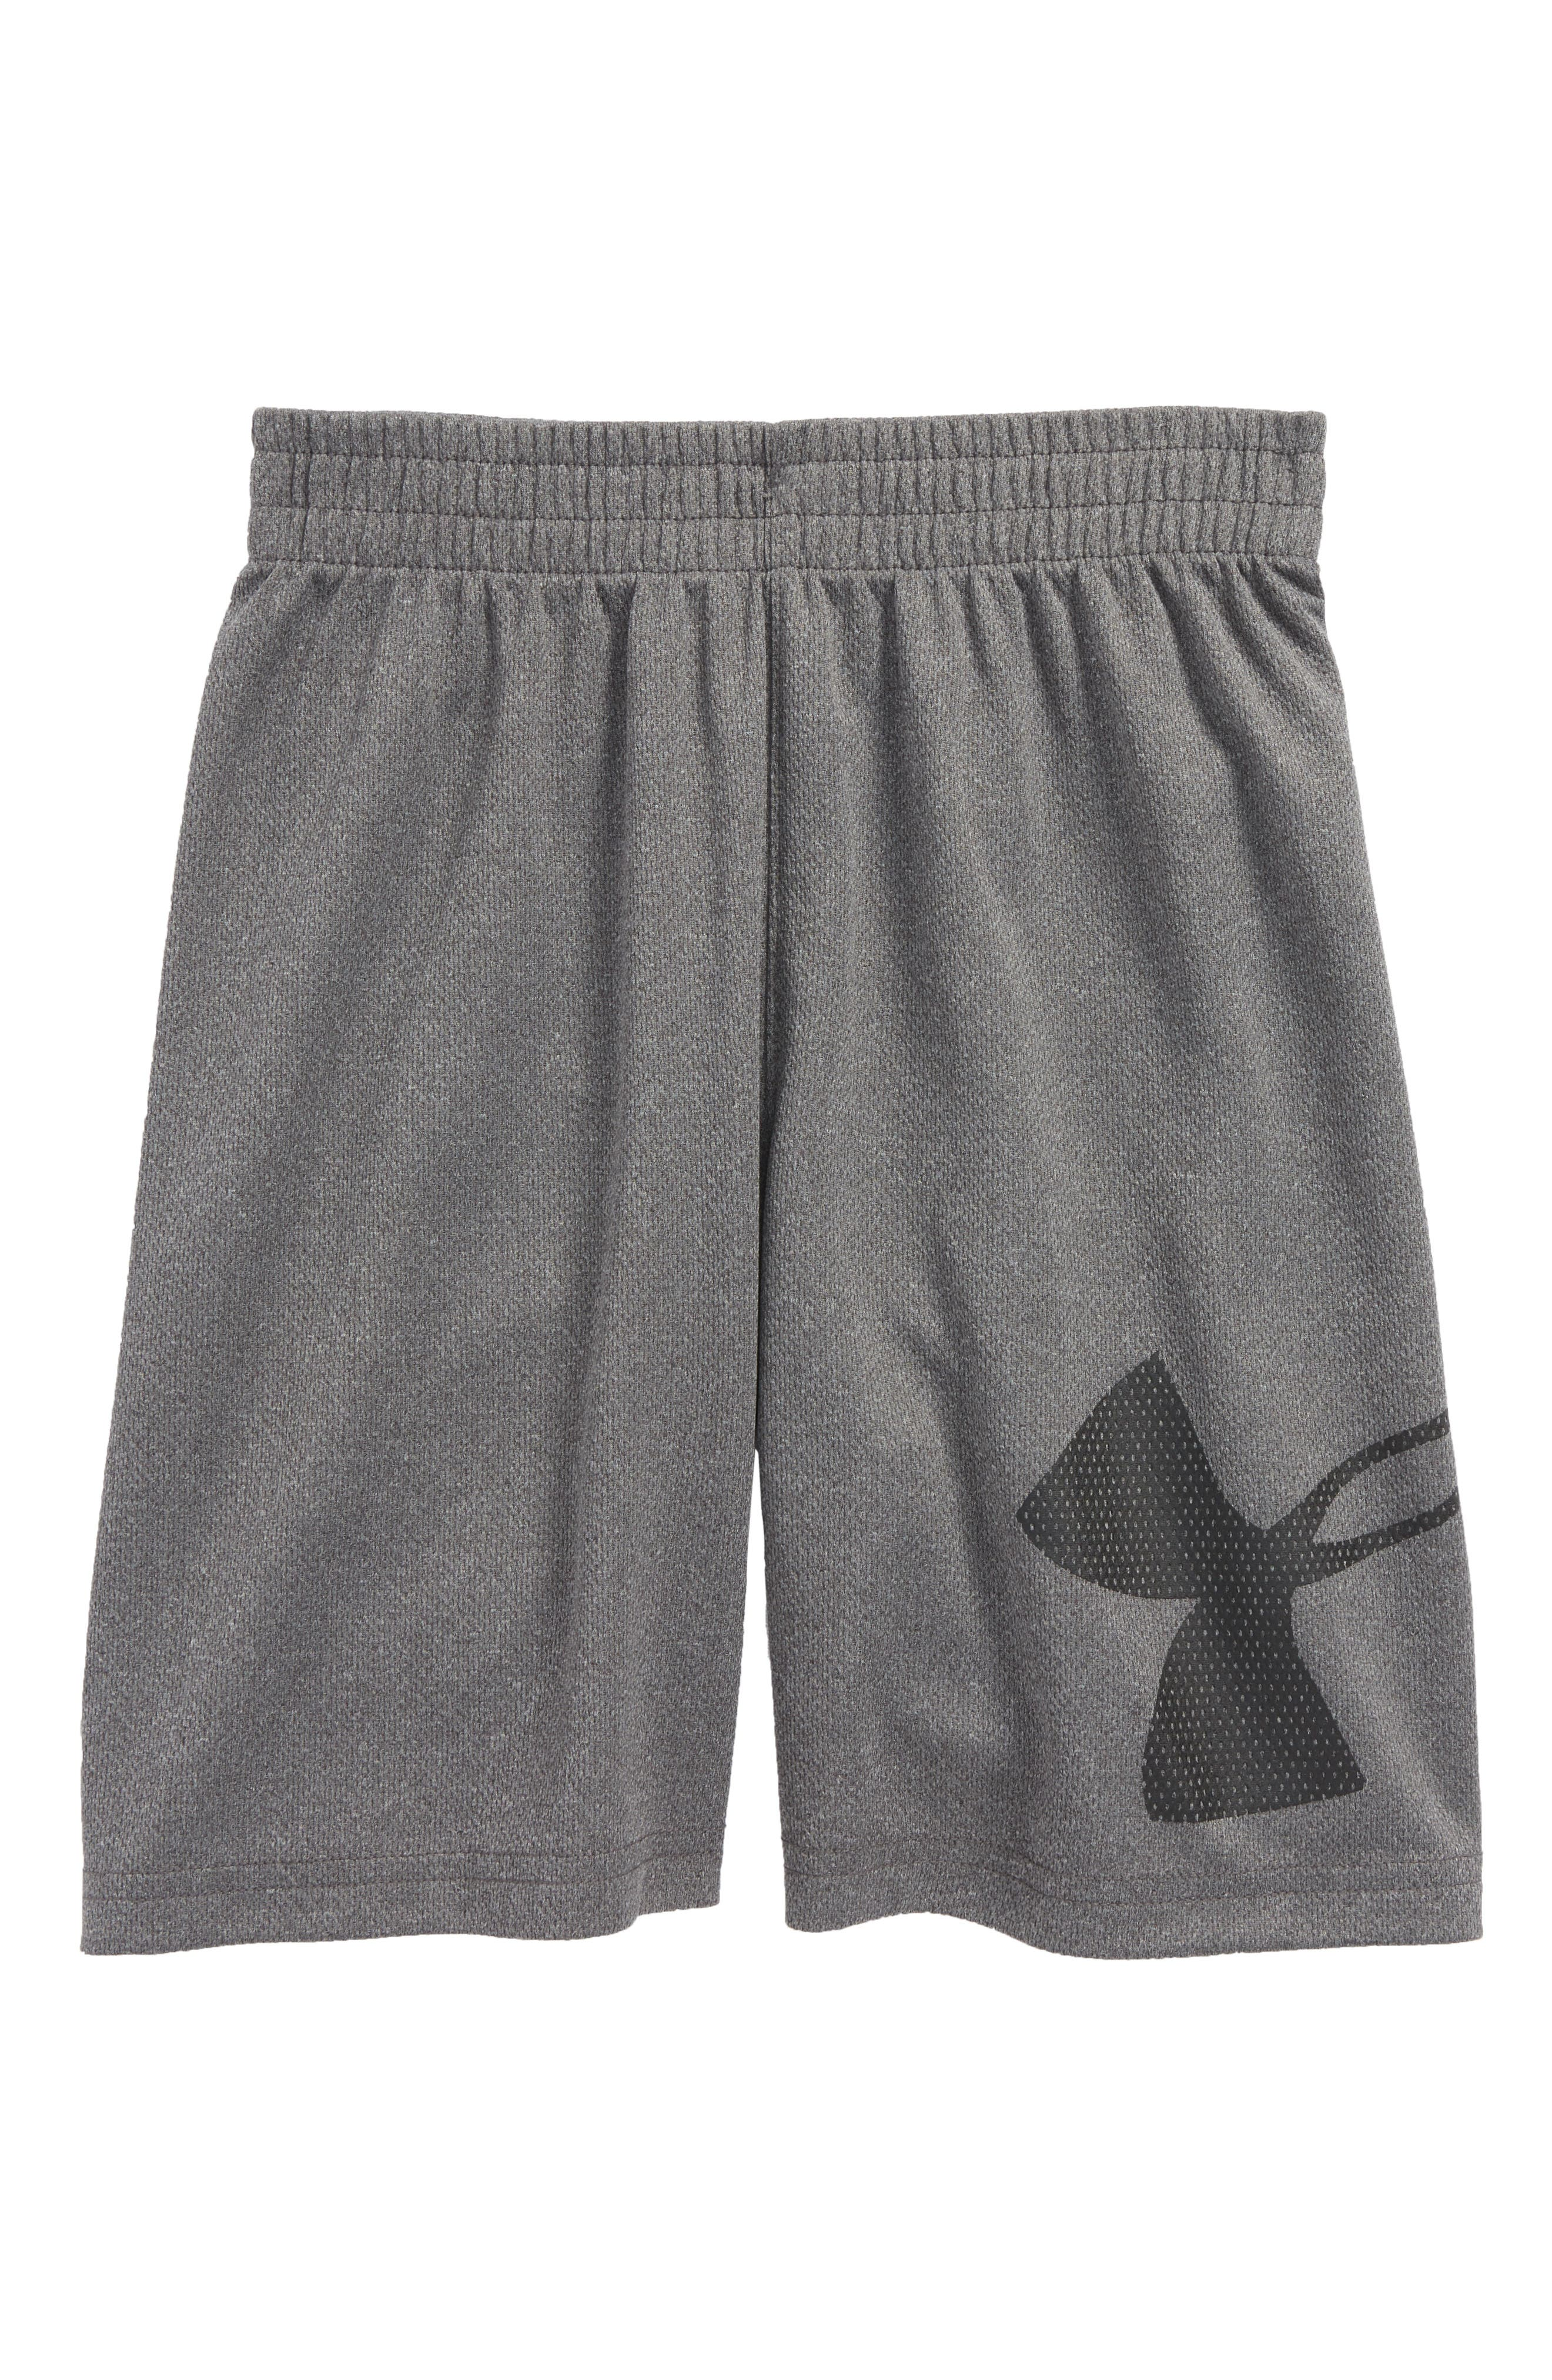 Zoom Striker Mesh HeatGear<sup>®</sup> Shorts,                             Main thumbnail 1, color,                             020